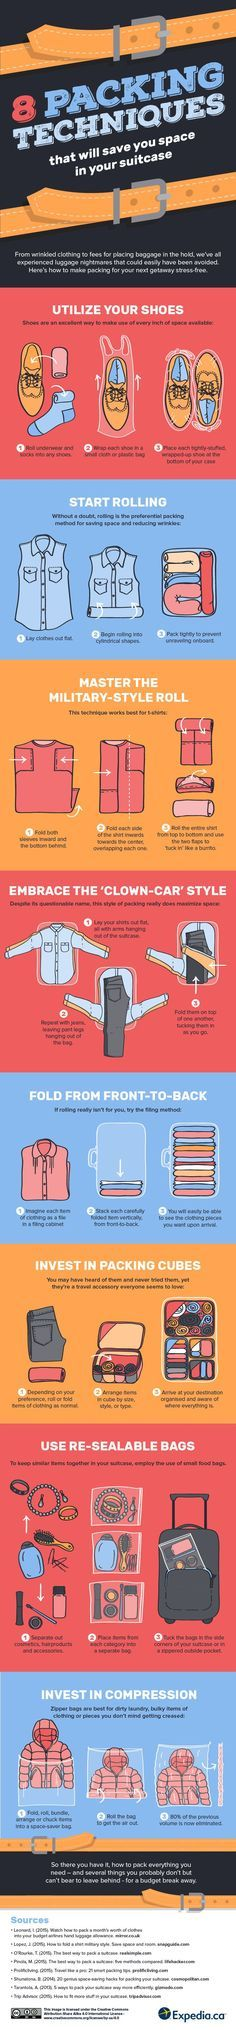 8 Suitcase Hacks For Frequent Travellers [Infographic]   Lifehacker Australia